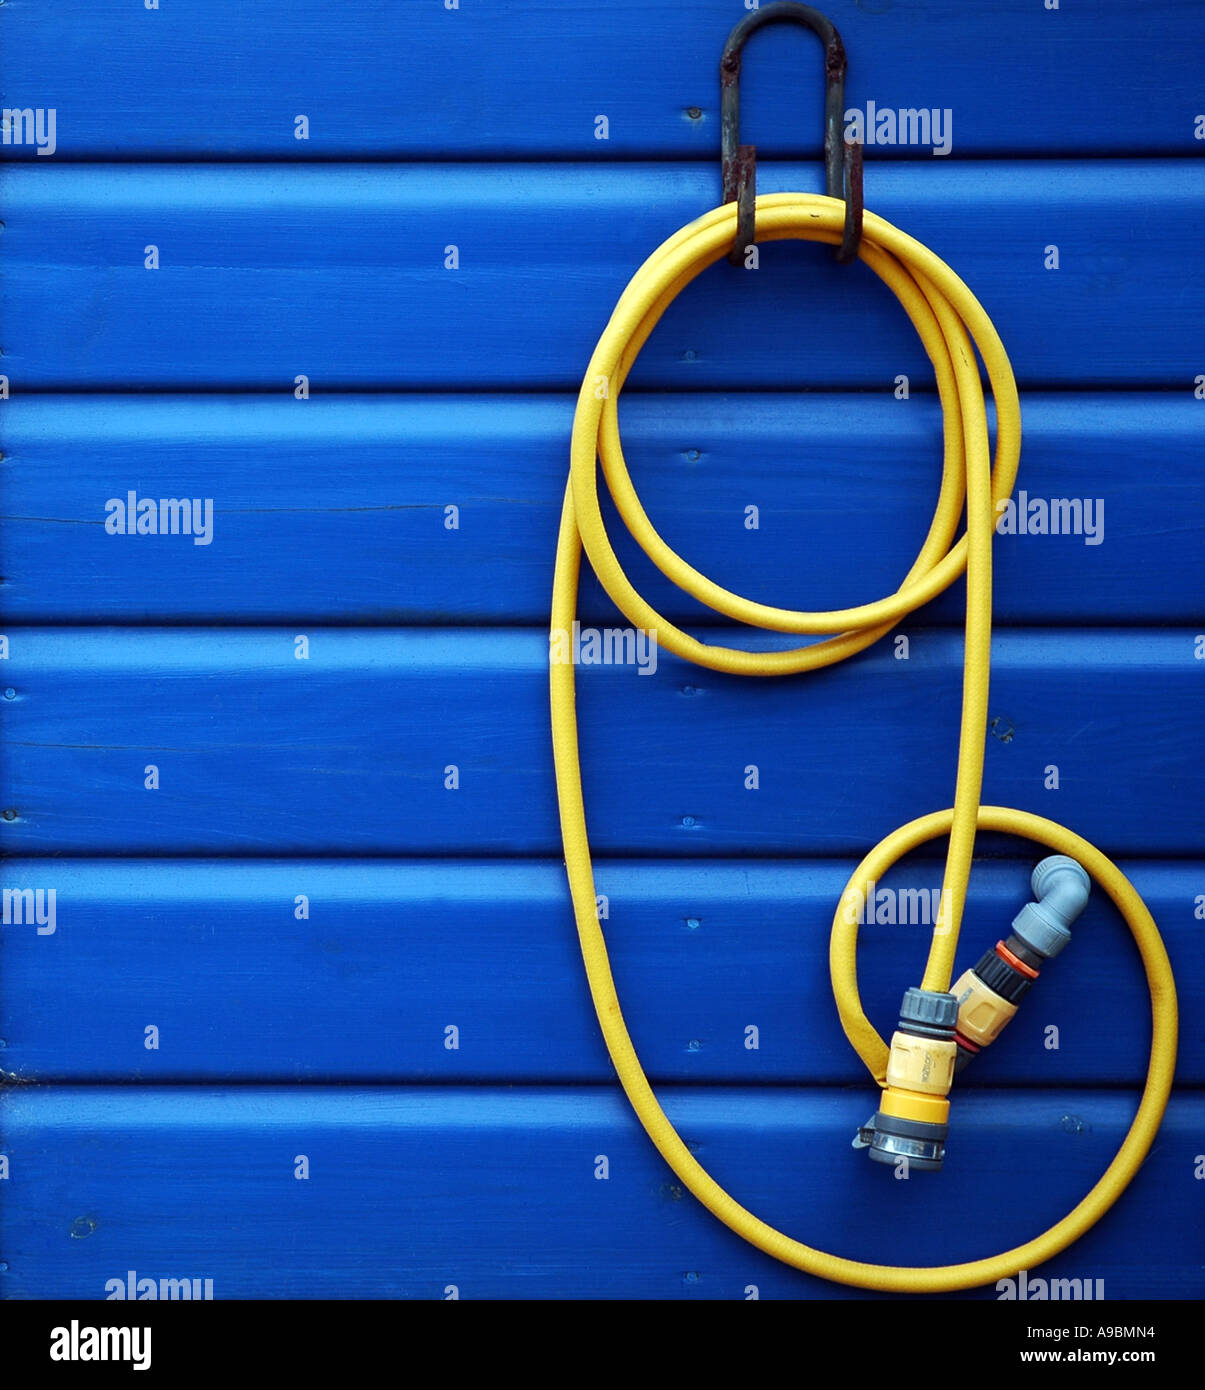 Curled yellow hosepipe hanging on blue wooden beach hut - Stock Image